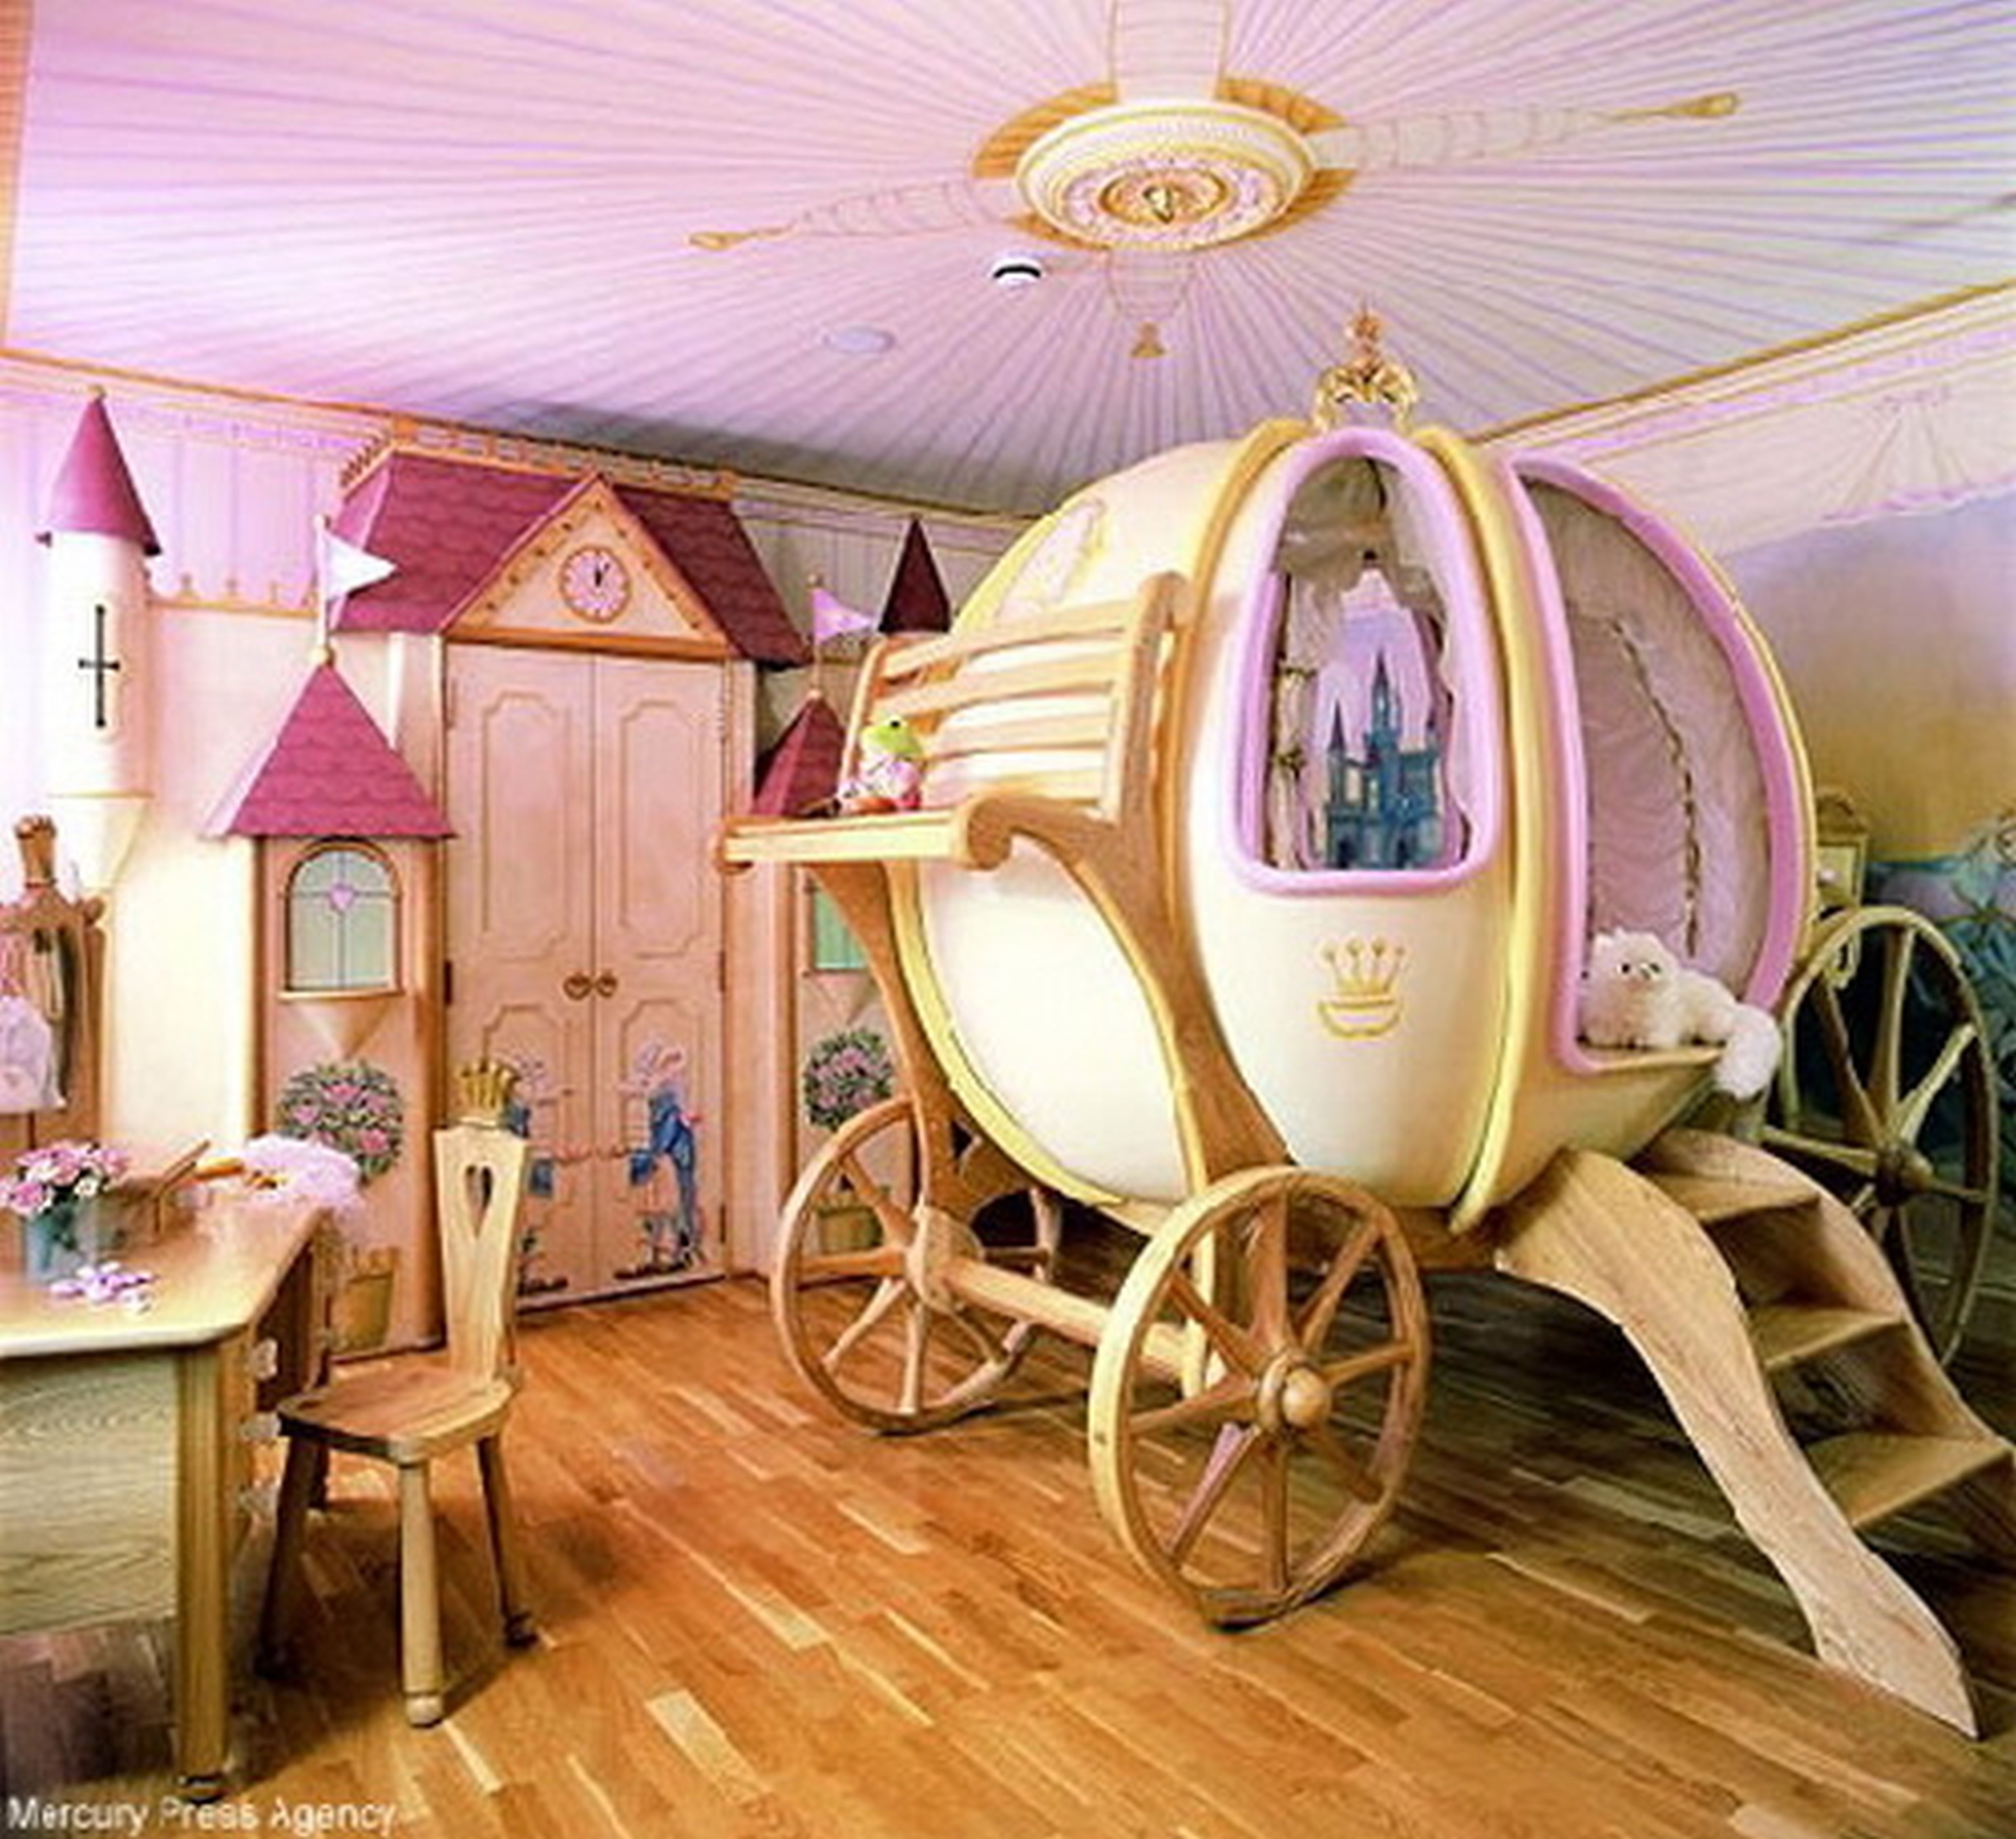 Attirant 15 Disney Inspired Rooms That Will Make You Want To Redo Your Kidu0027s Bedroom